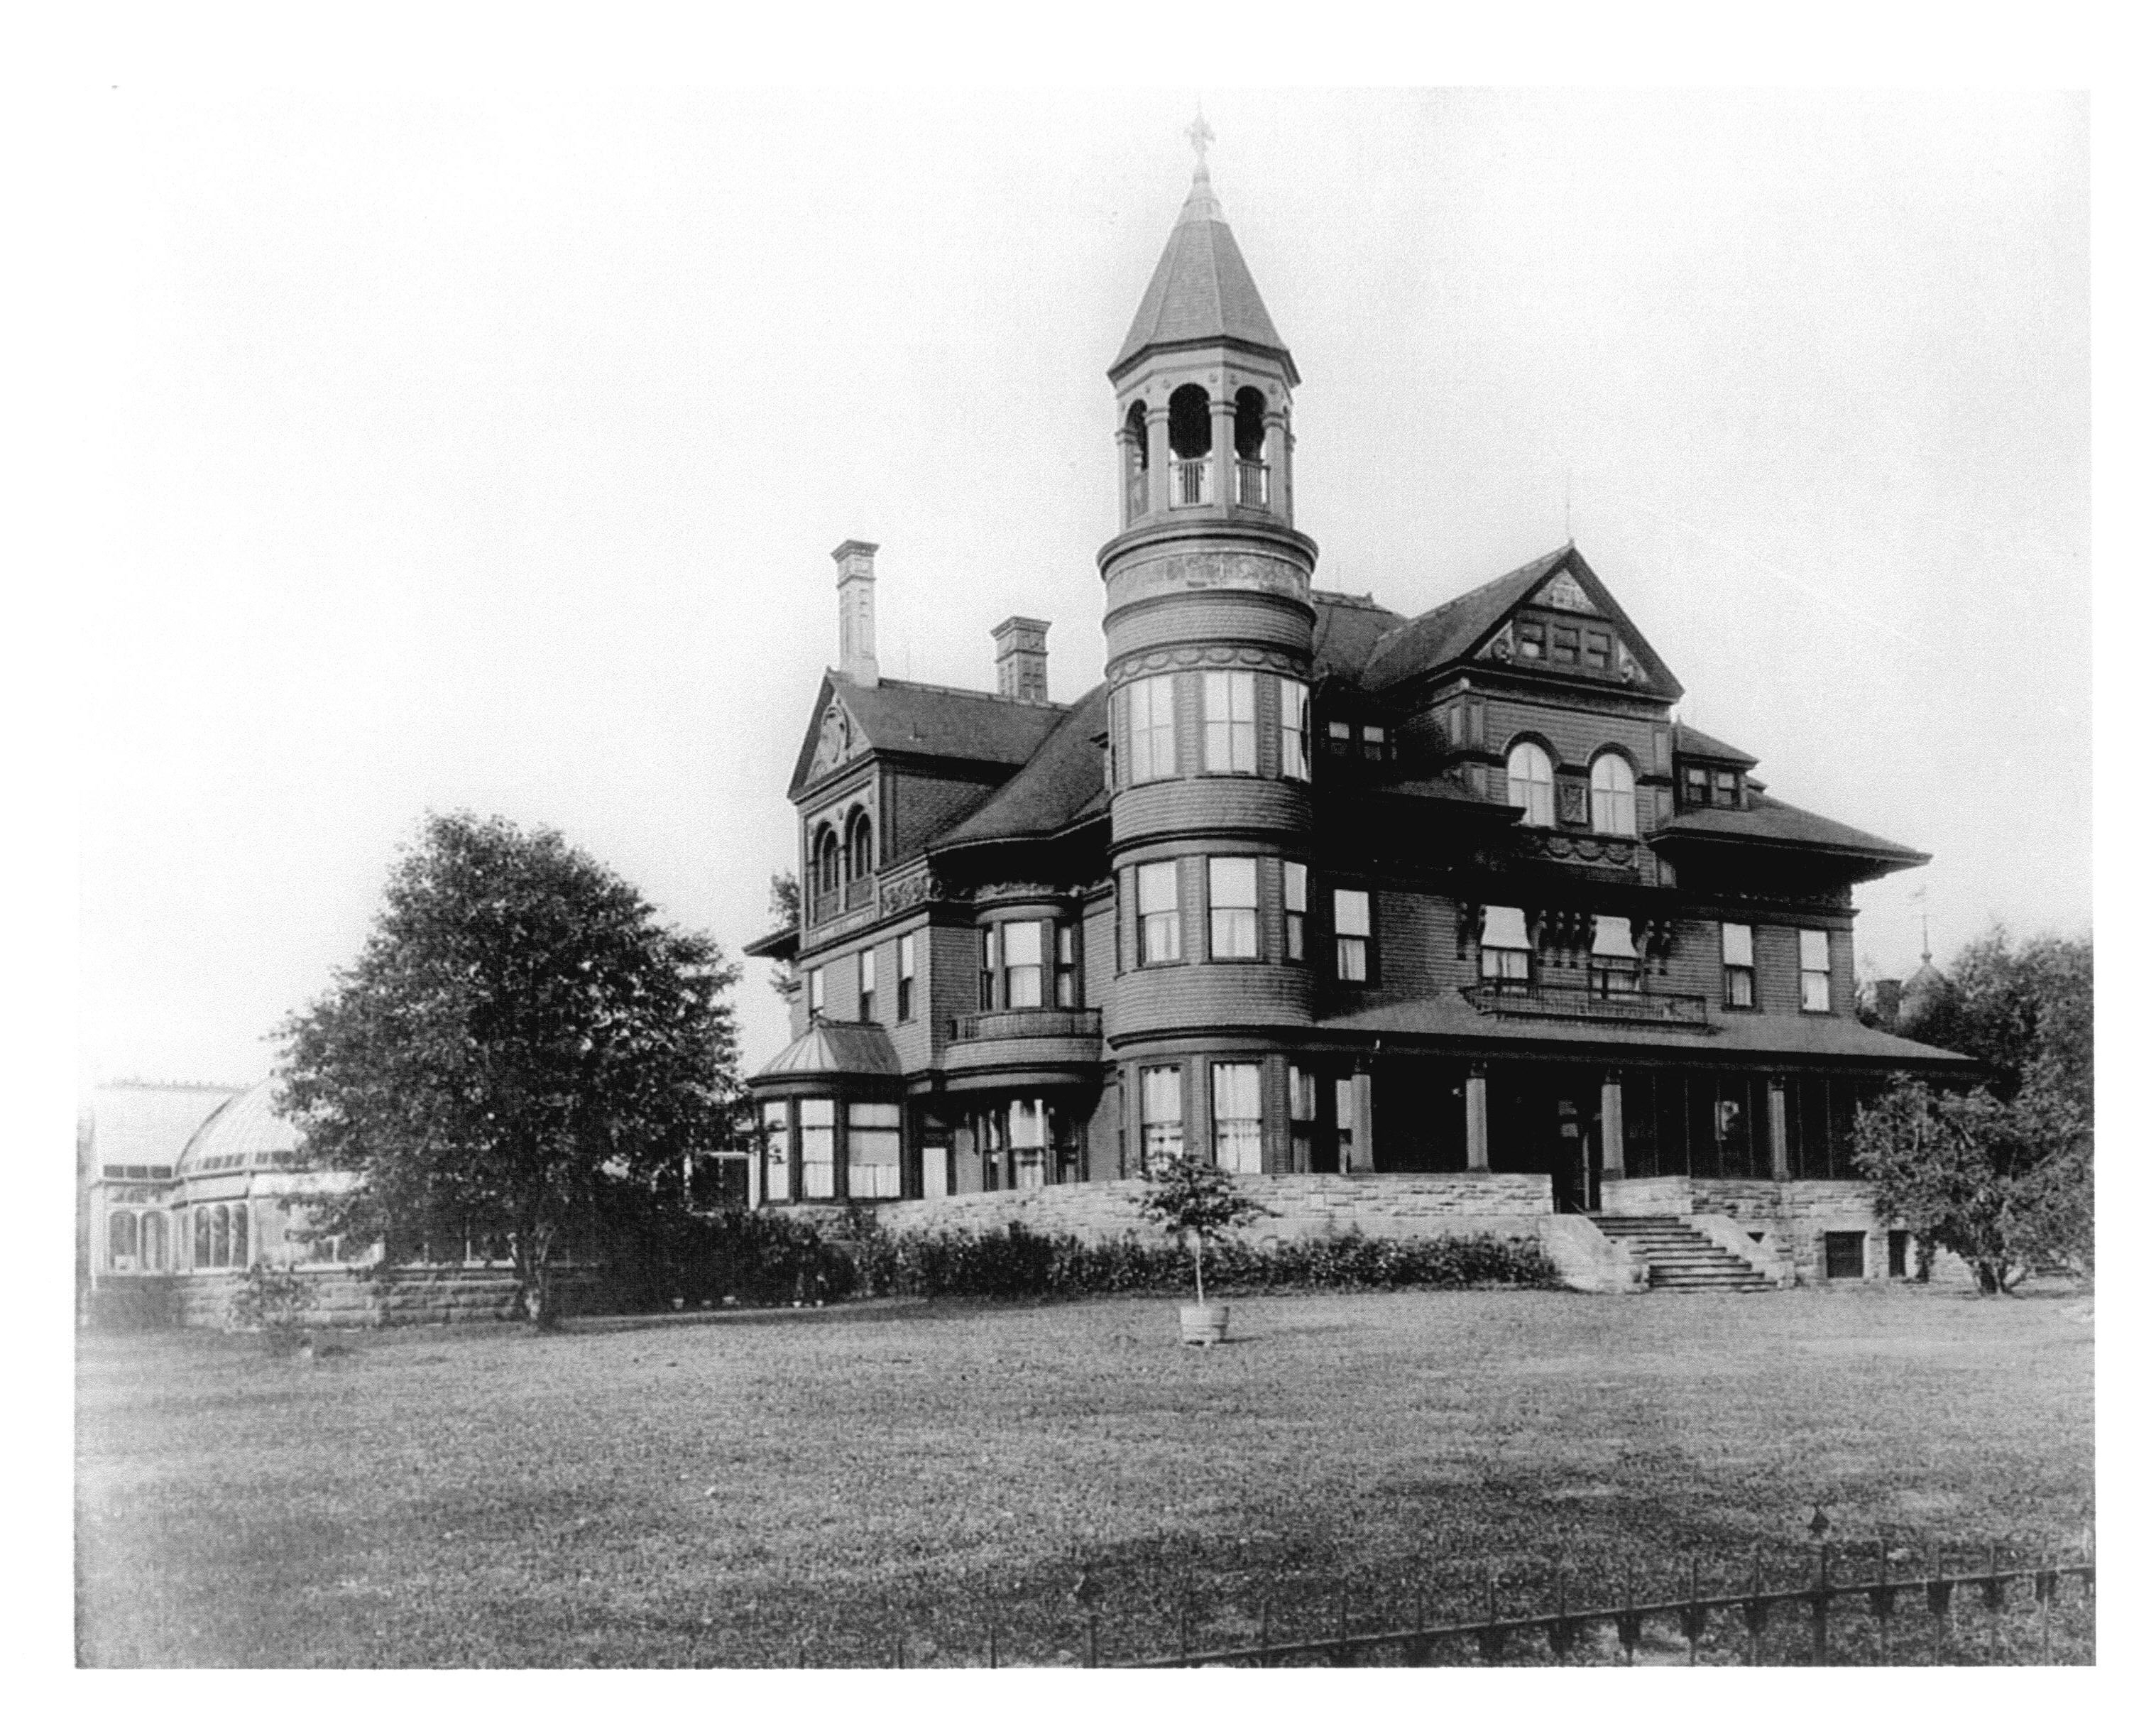 An early picture of the mansion